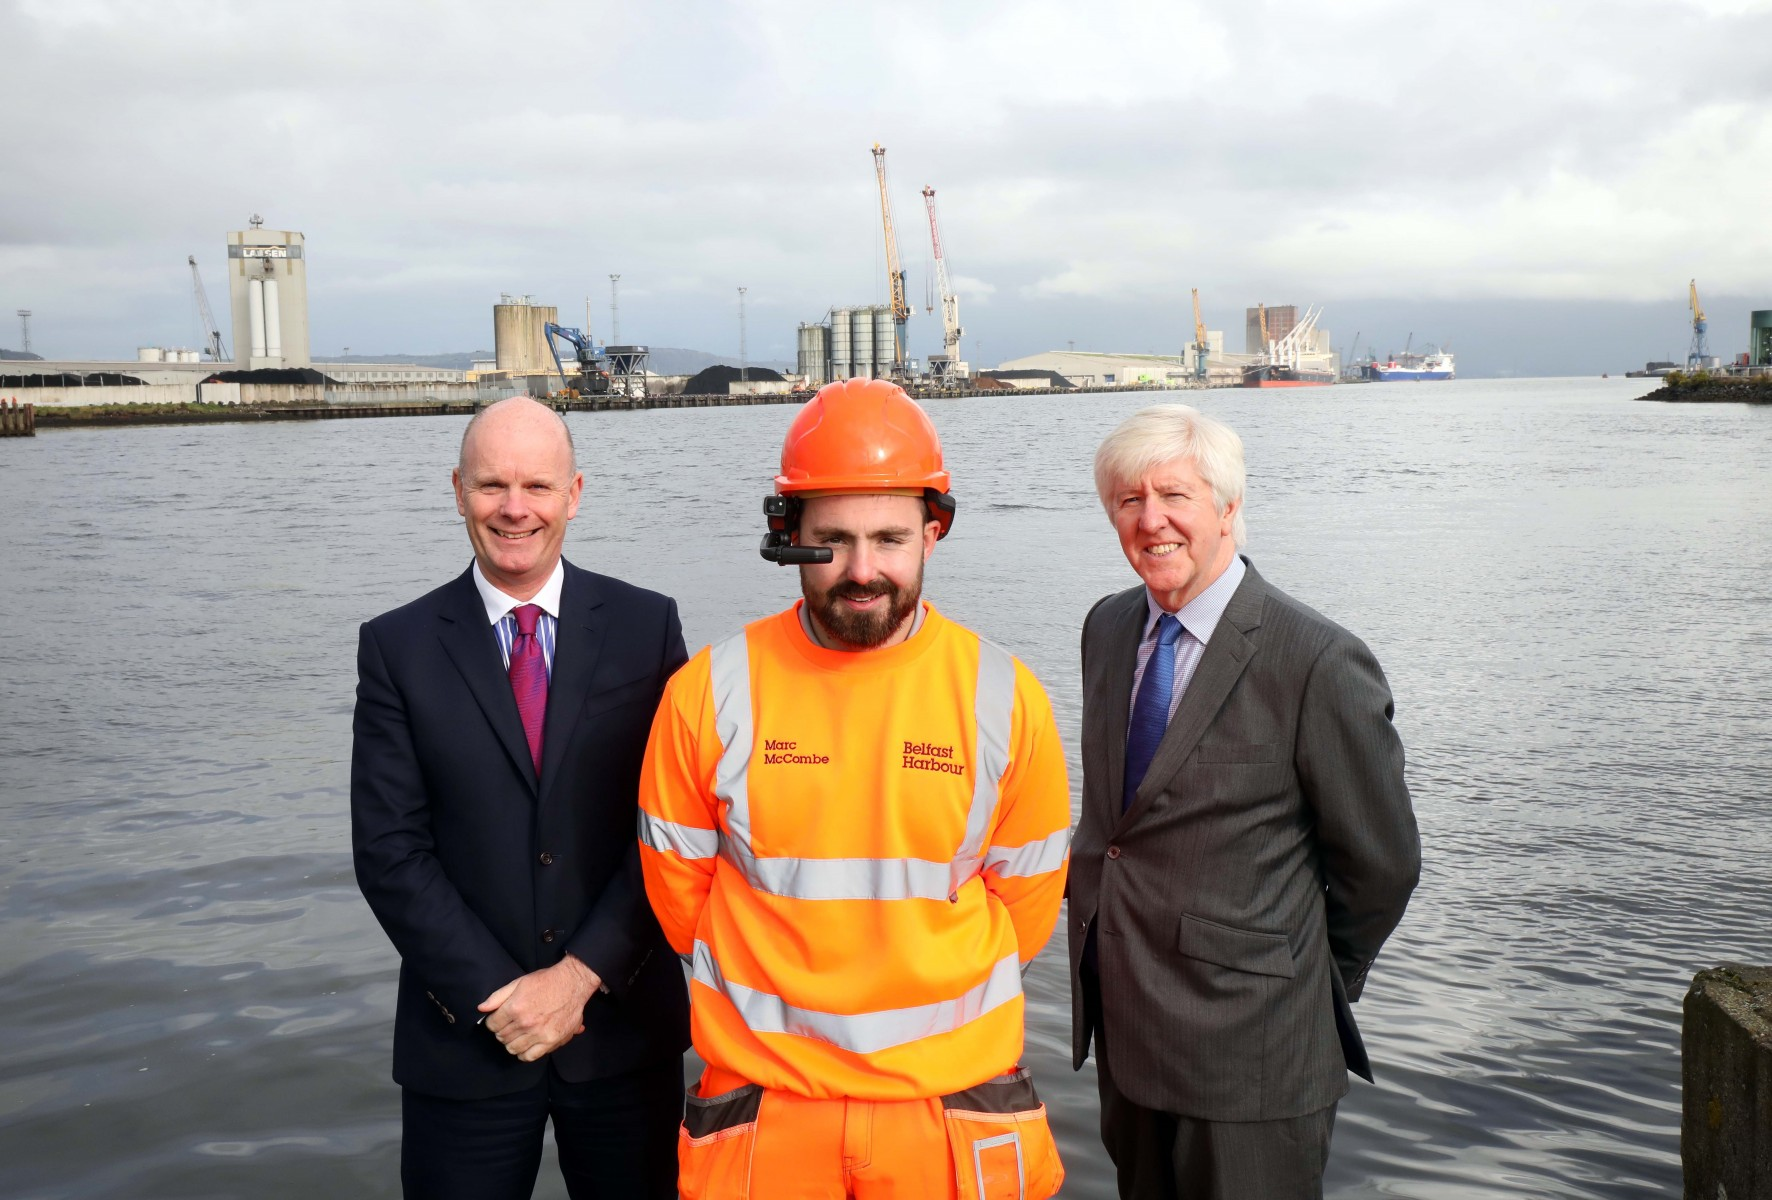 Joe O'Neill CEO Belfast Harbour, Gerry McQuade CEO BT Enterprise with Belfast Harbour Technician Marc McCombe  demonstrating the live 5G enabled device for remote c